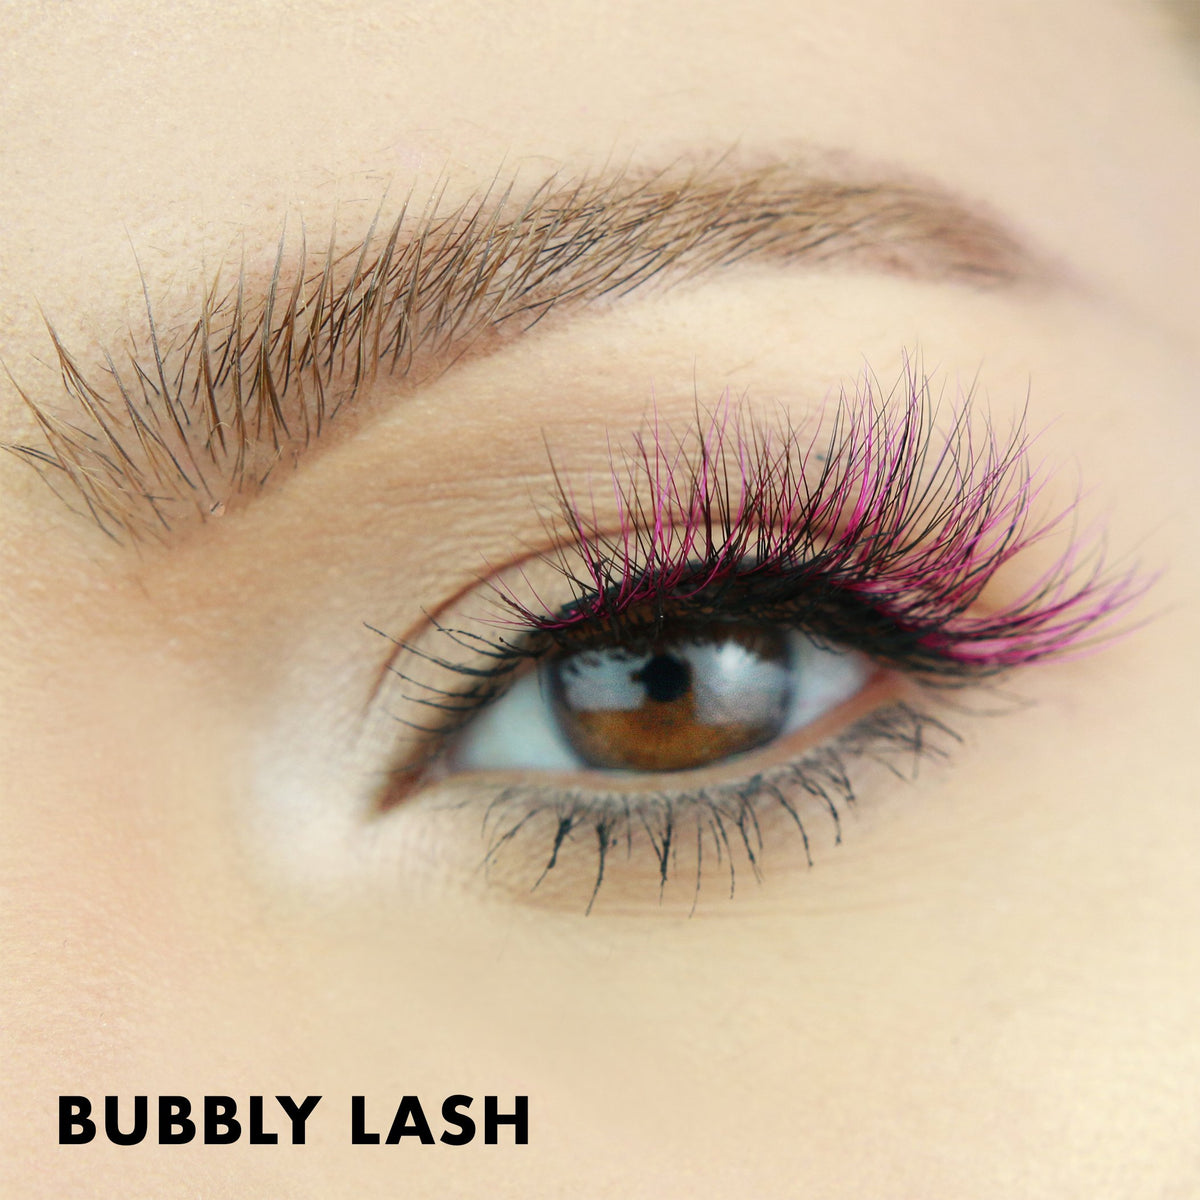 Bubbly Lash